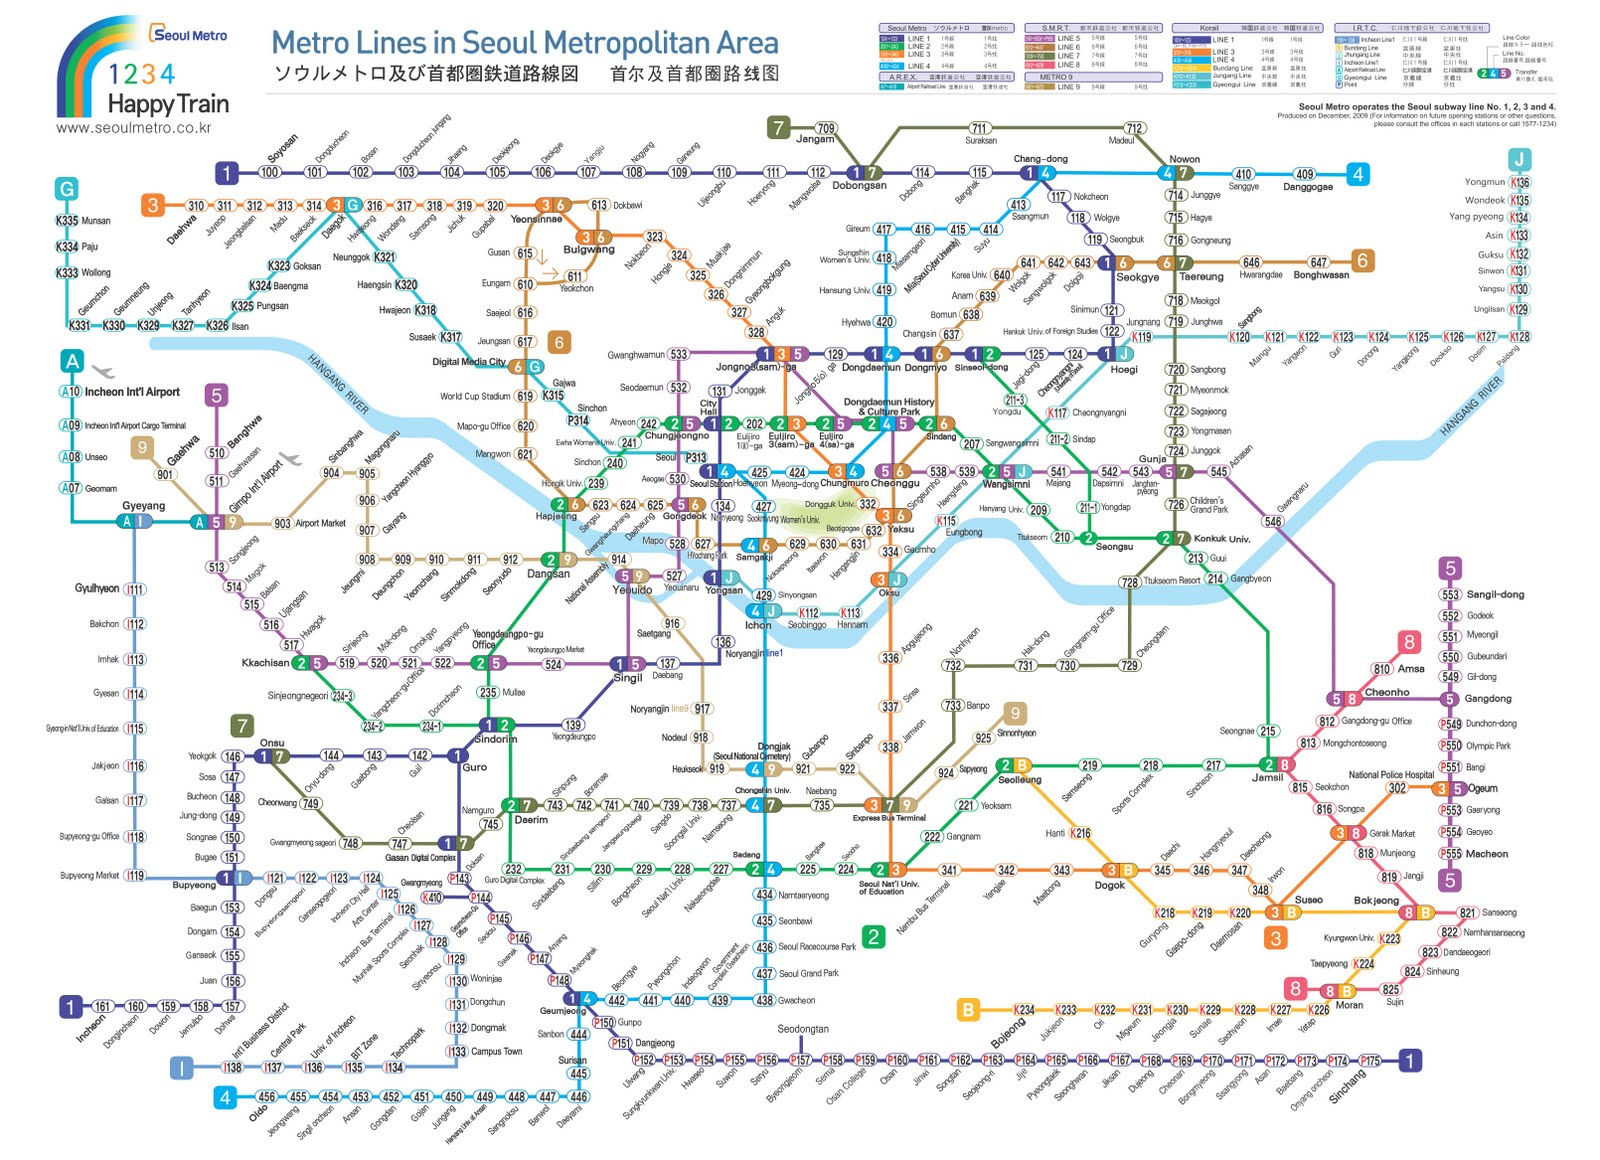 Core Alpha Travel Korea Subway Map In Seoul